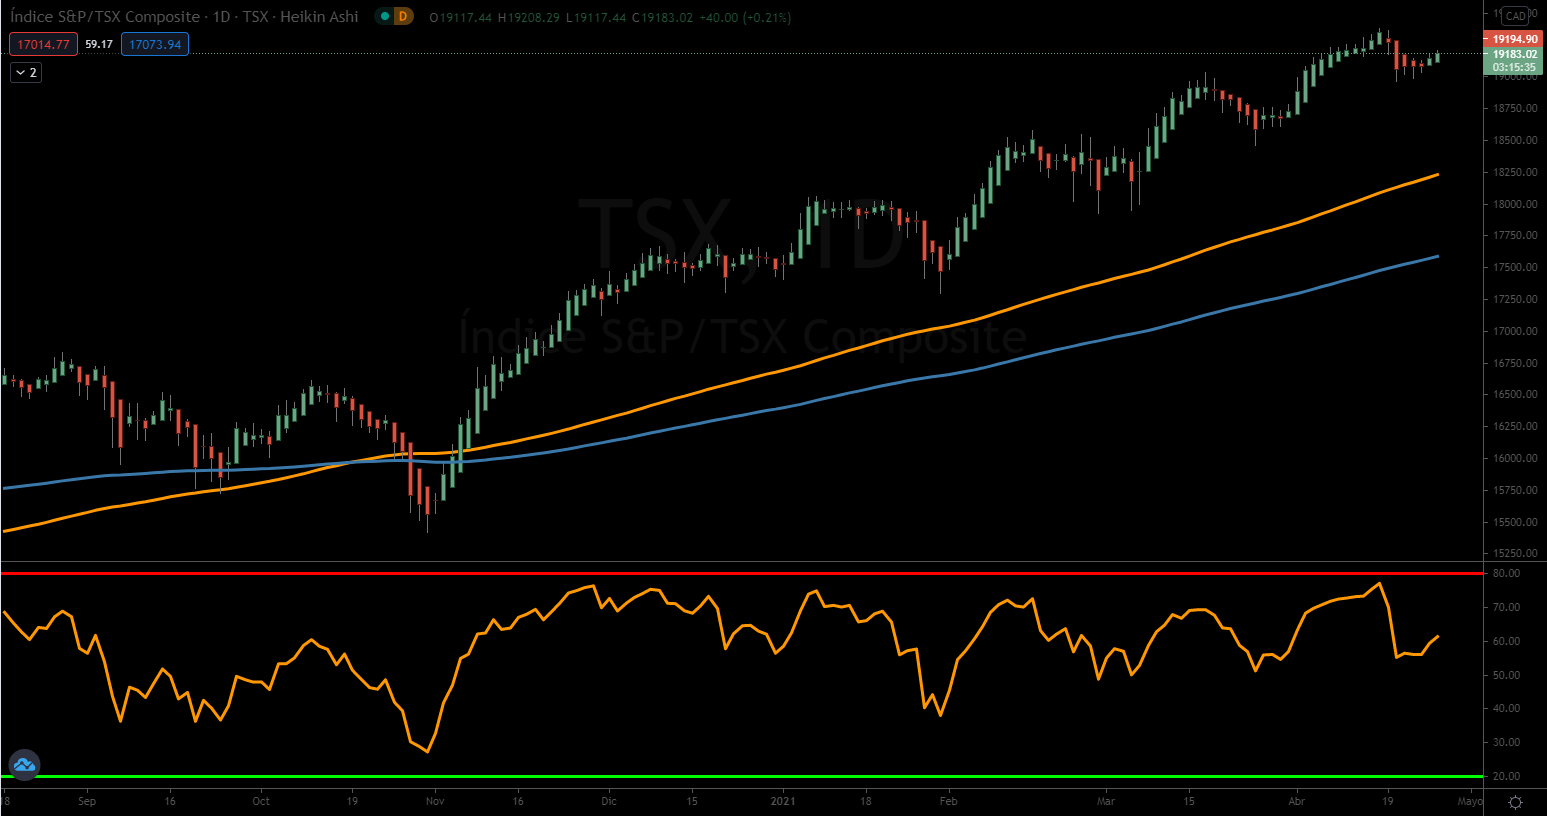 sp tsx